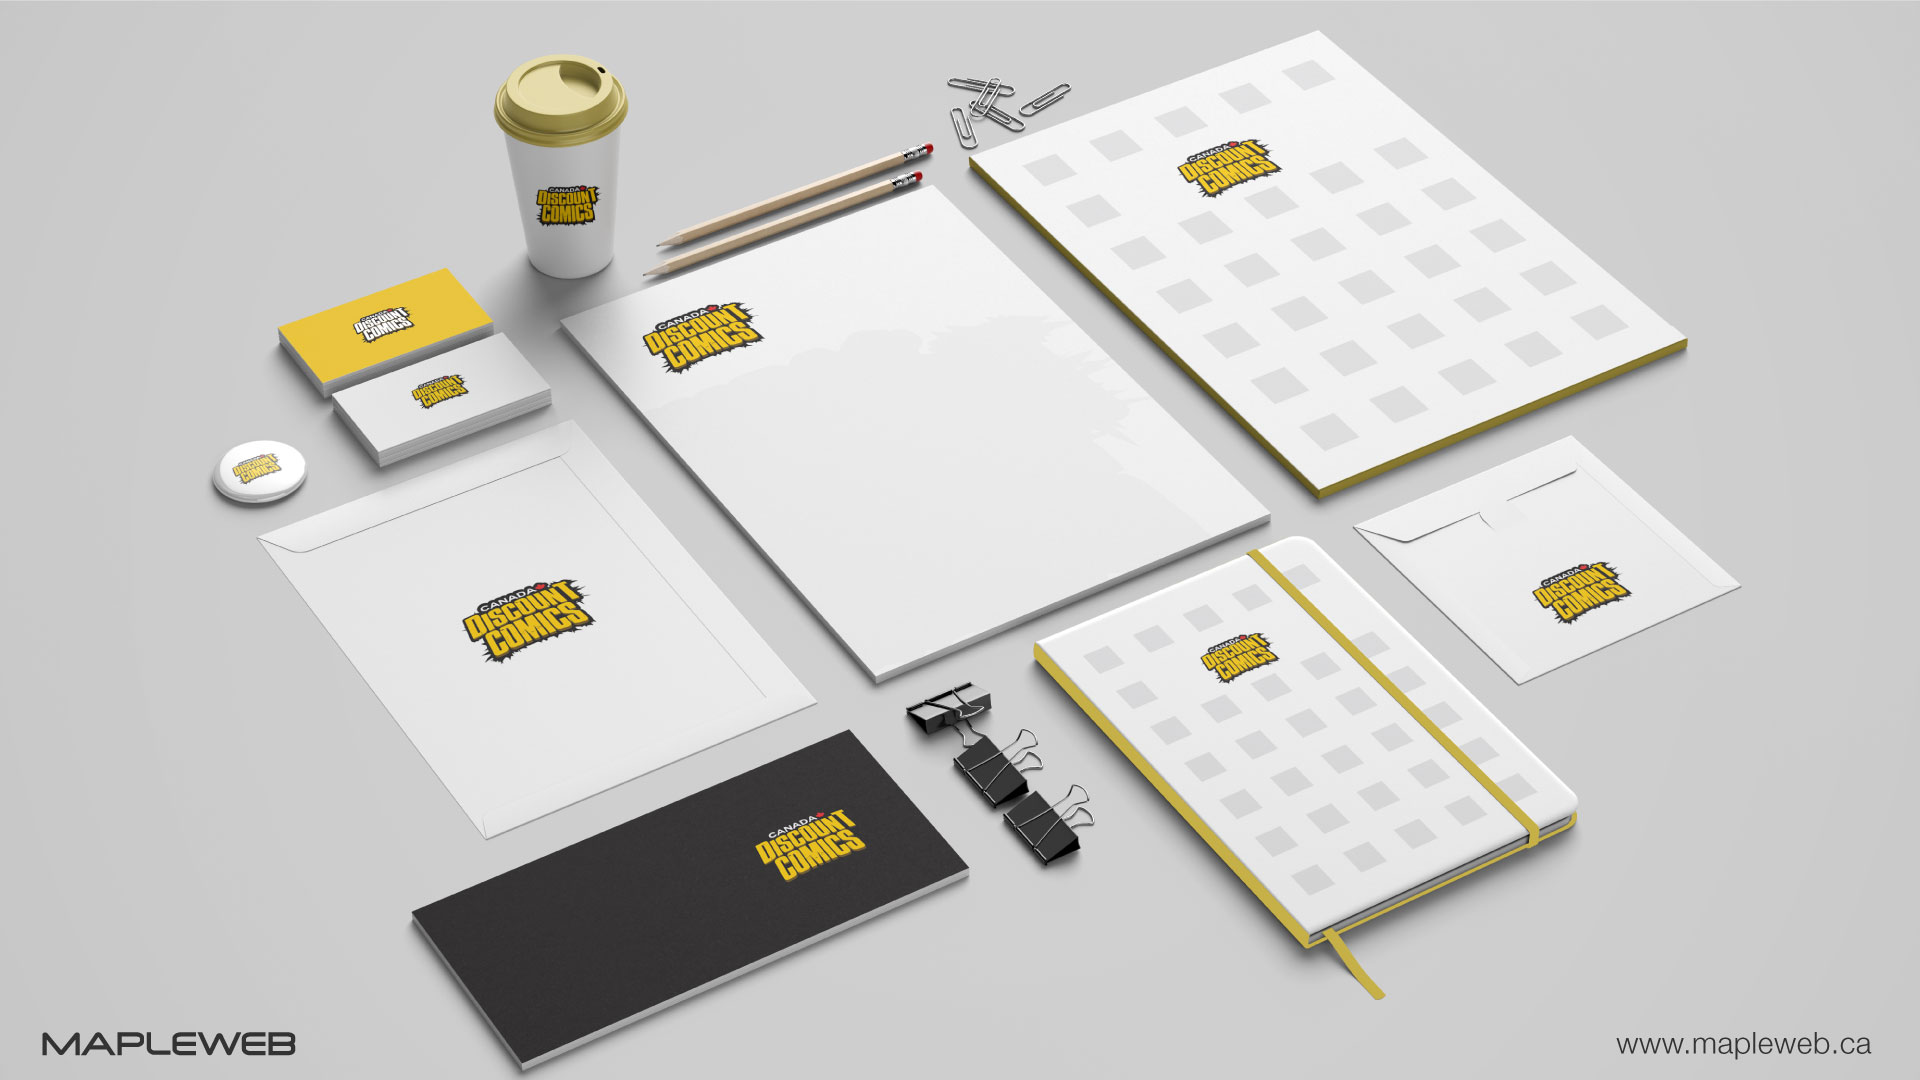 canada-discount-comic-brand-logo-design-by-mapleweb-vancouver-canada-stationery-mock